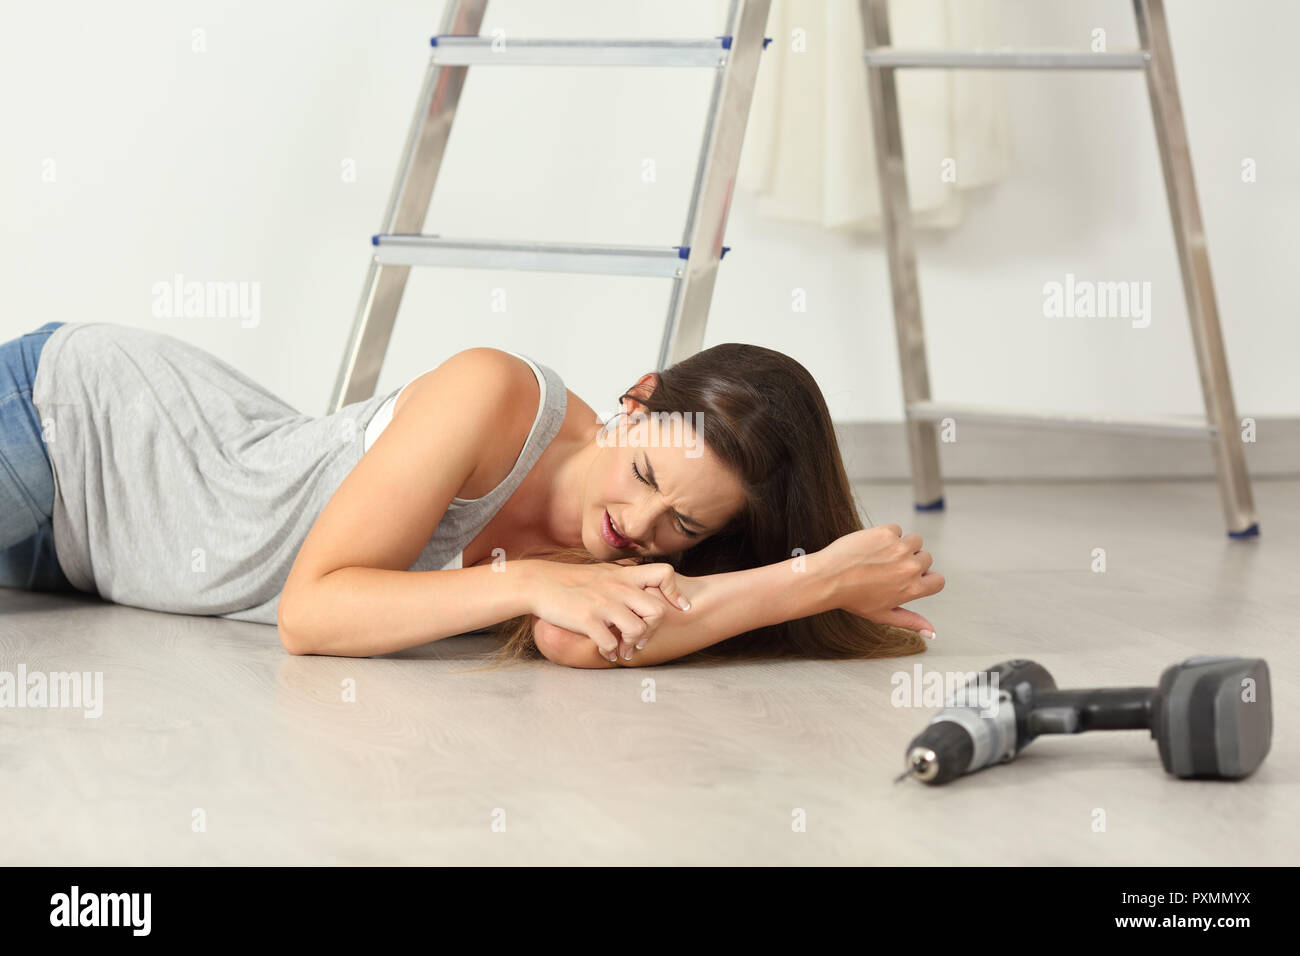 Woman complaining after domestic accident on the floor at home - Stock Image